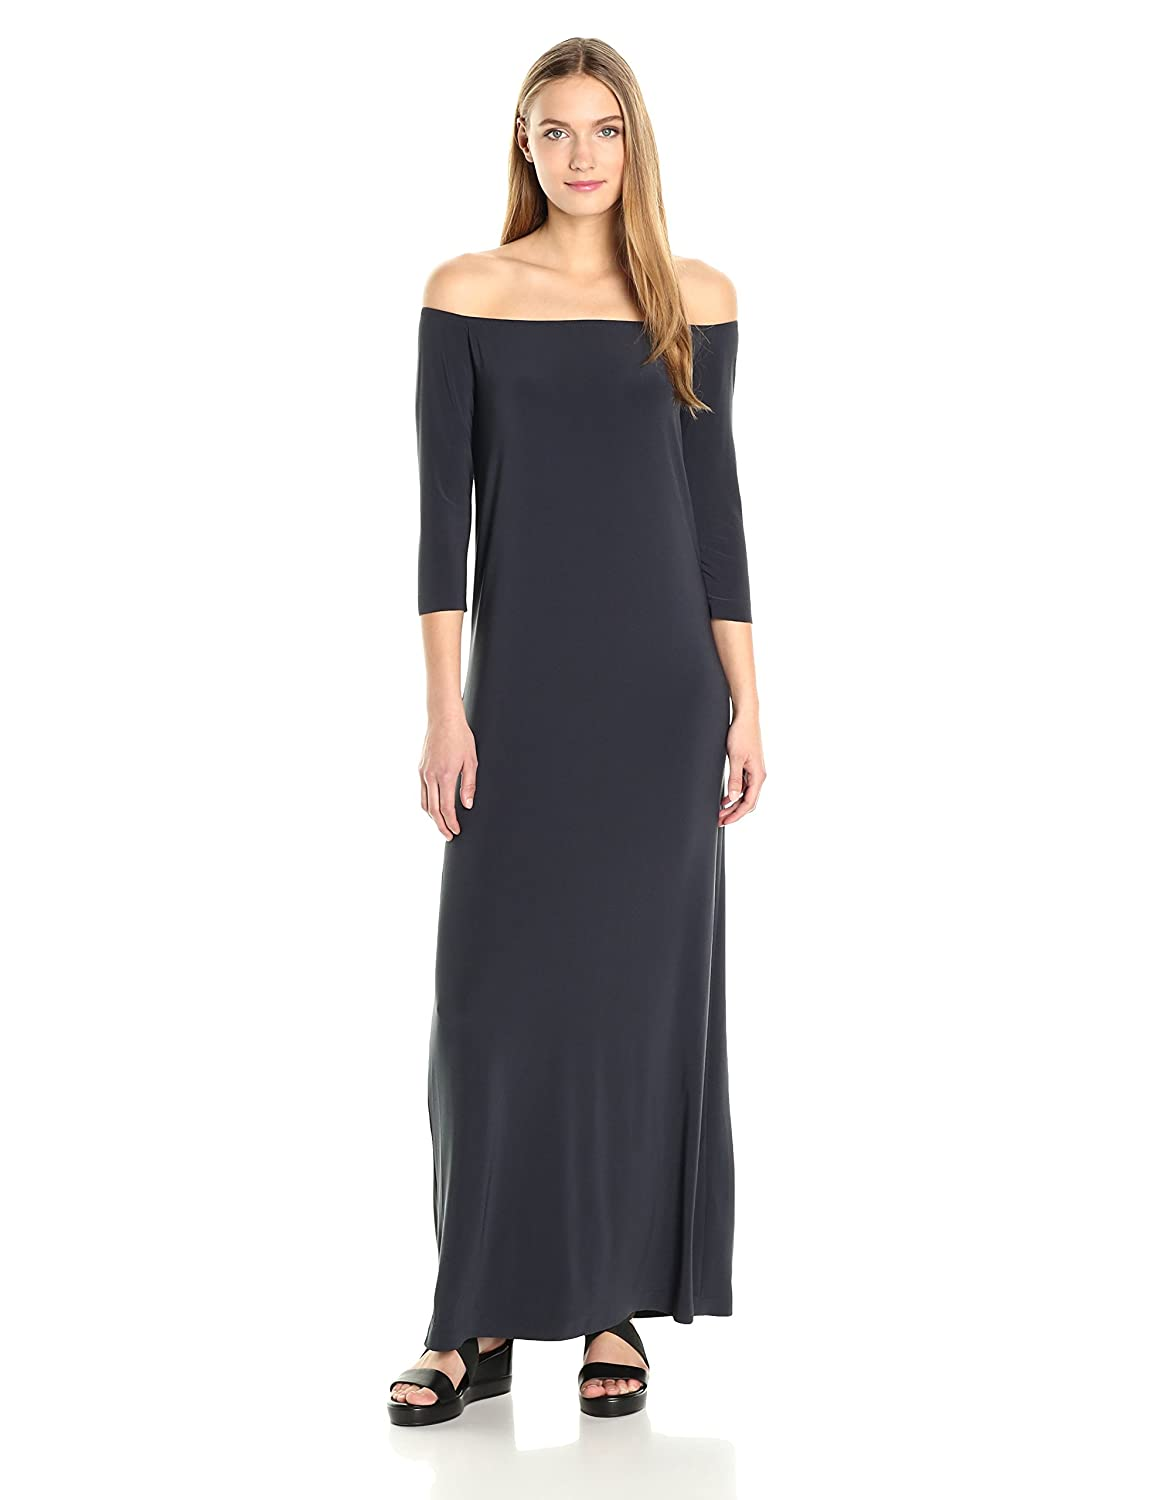 10f06bcdc4 Amazon.com  Norma Kamali Women s Off Shoulder Gown in Pewter  Clothing